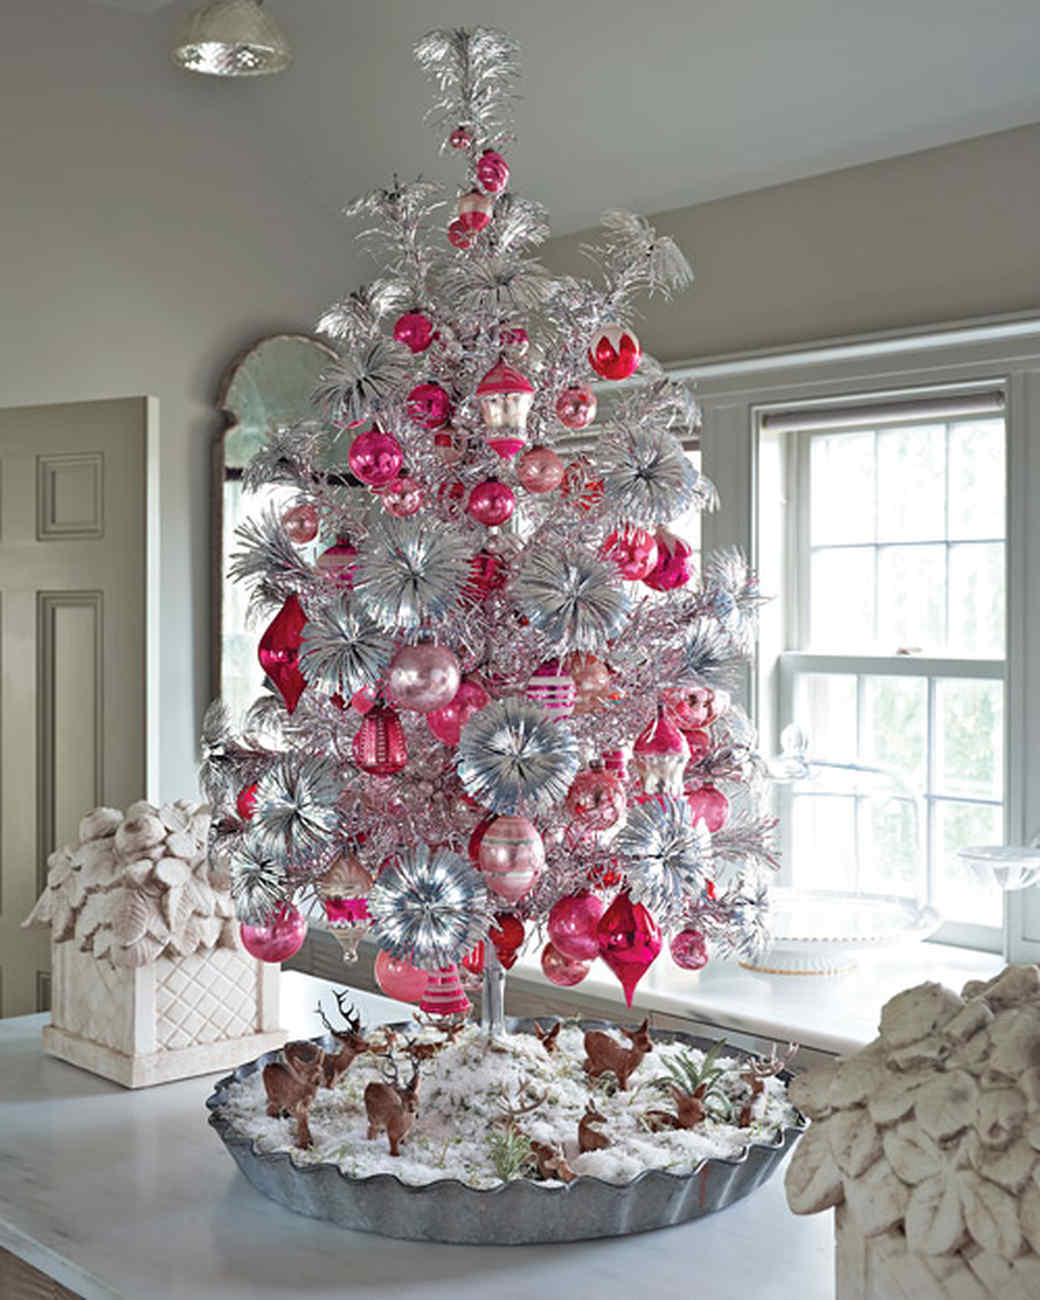 28 creative christmas tree decorating ideas martha stewart - White Christmas Tree With Red Decorations